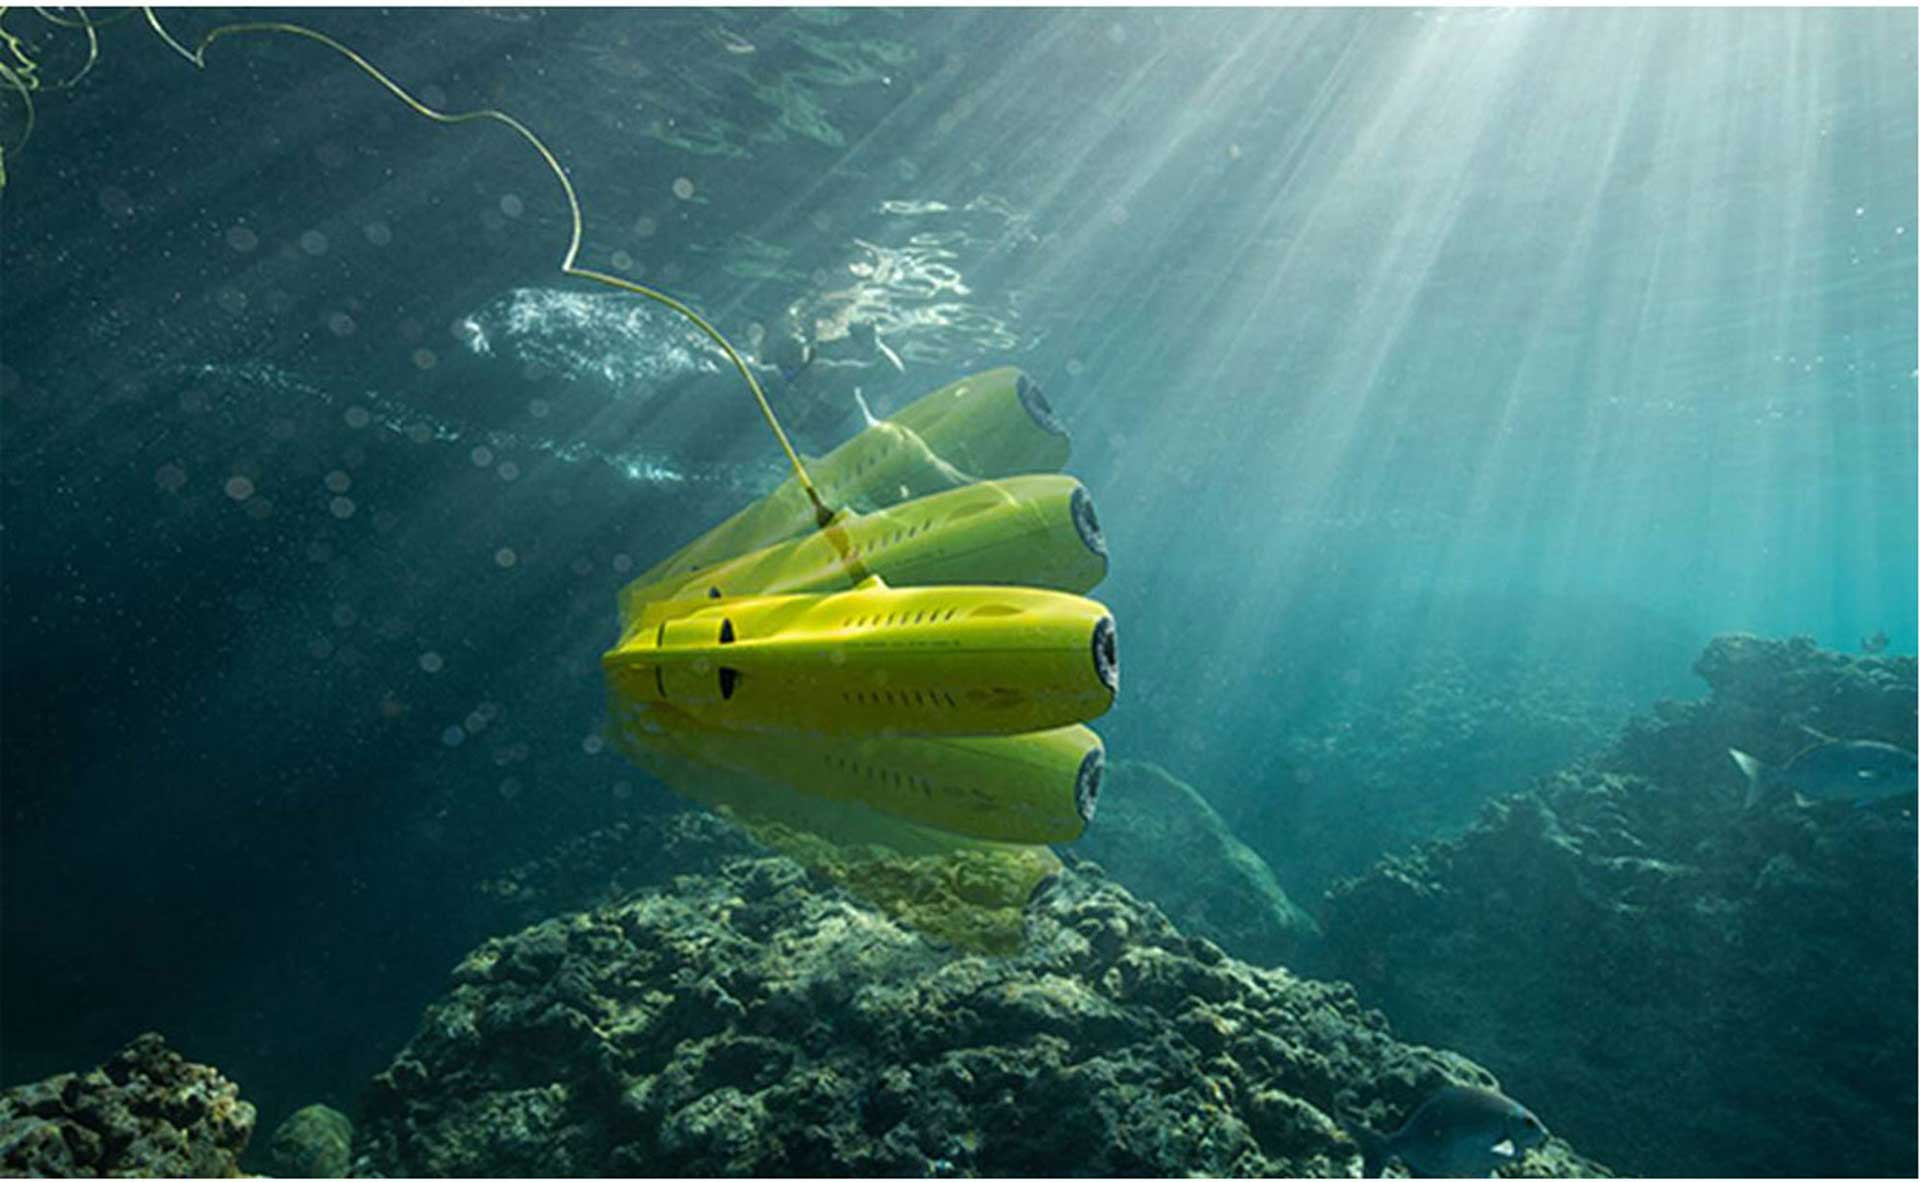 CHASING INNOVATION GLADIUS MINI (50M) ROV UNDERWATER DRONE WITH 4K VIDEO